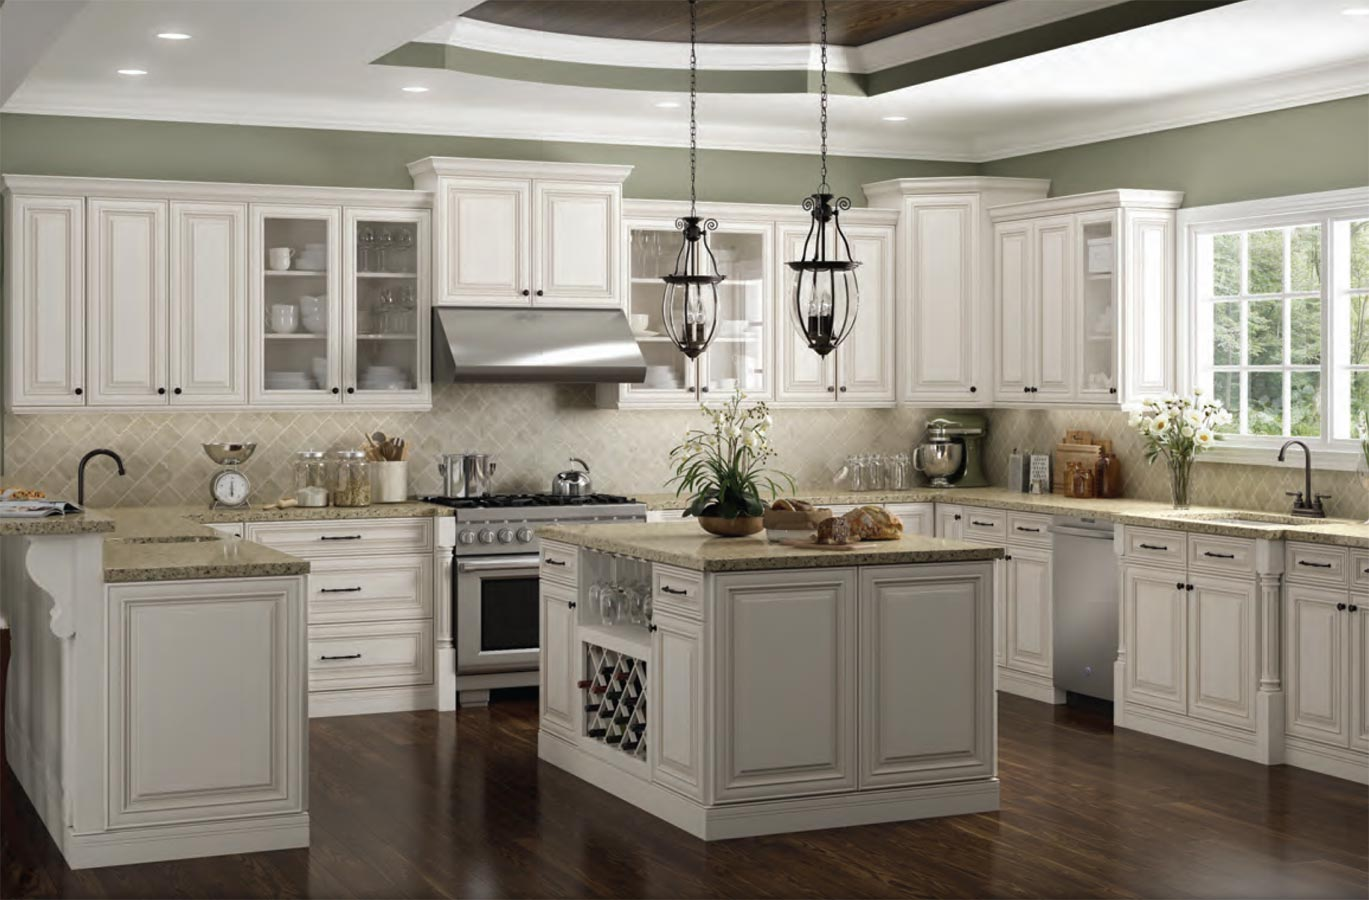 Painted kitchen cabinets cabinet ideas houselogic home for Antique white kitchen cabinets